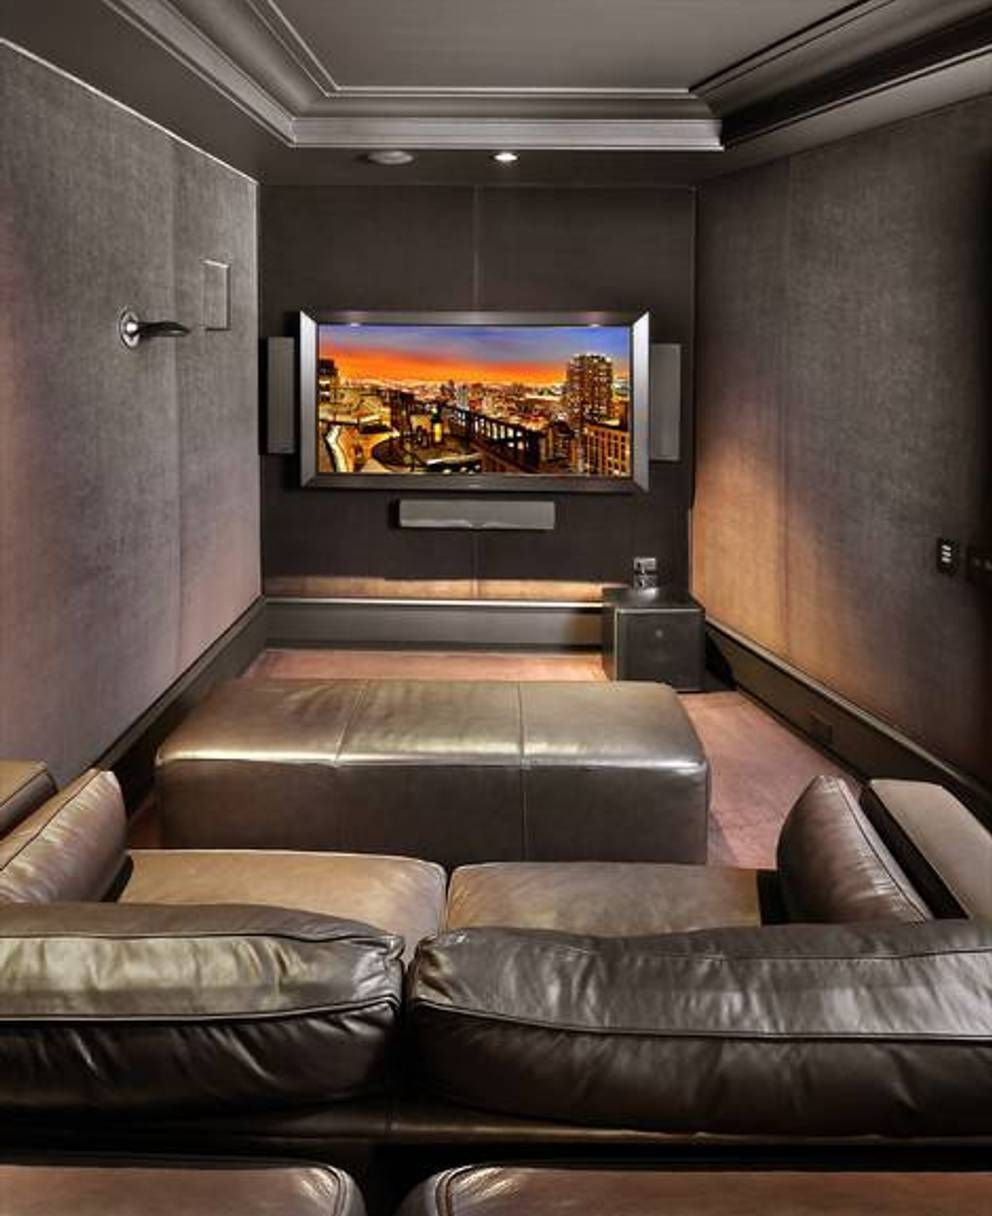 Home Design And Decor Small Home Theater Room Ideas: theater rooms design ideas